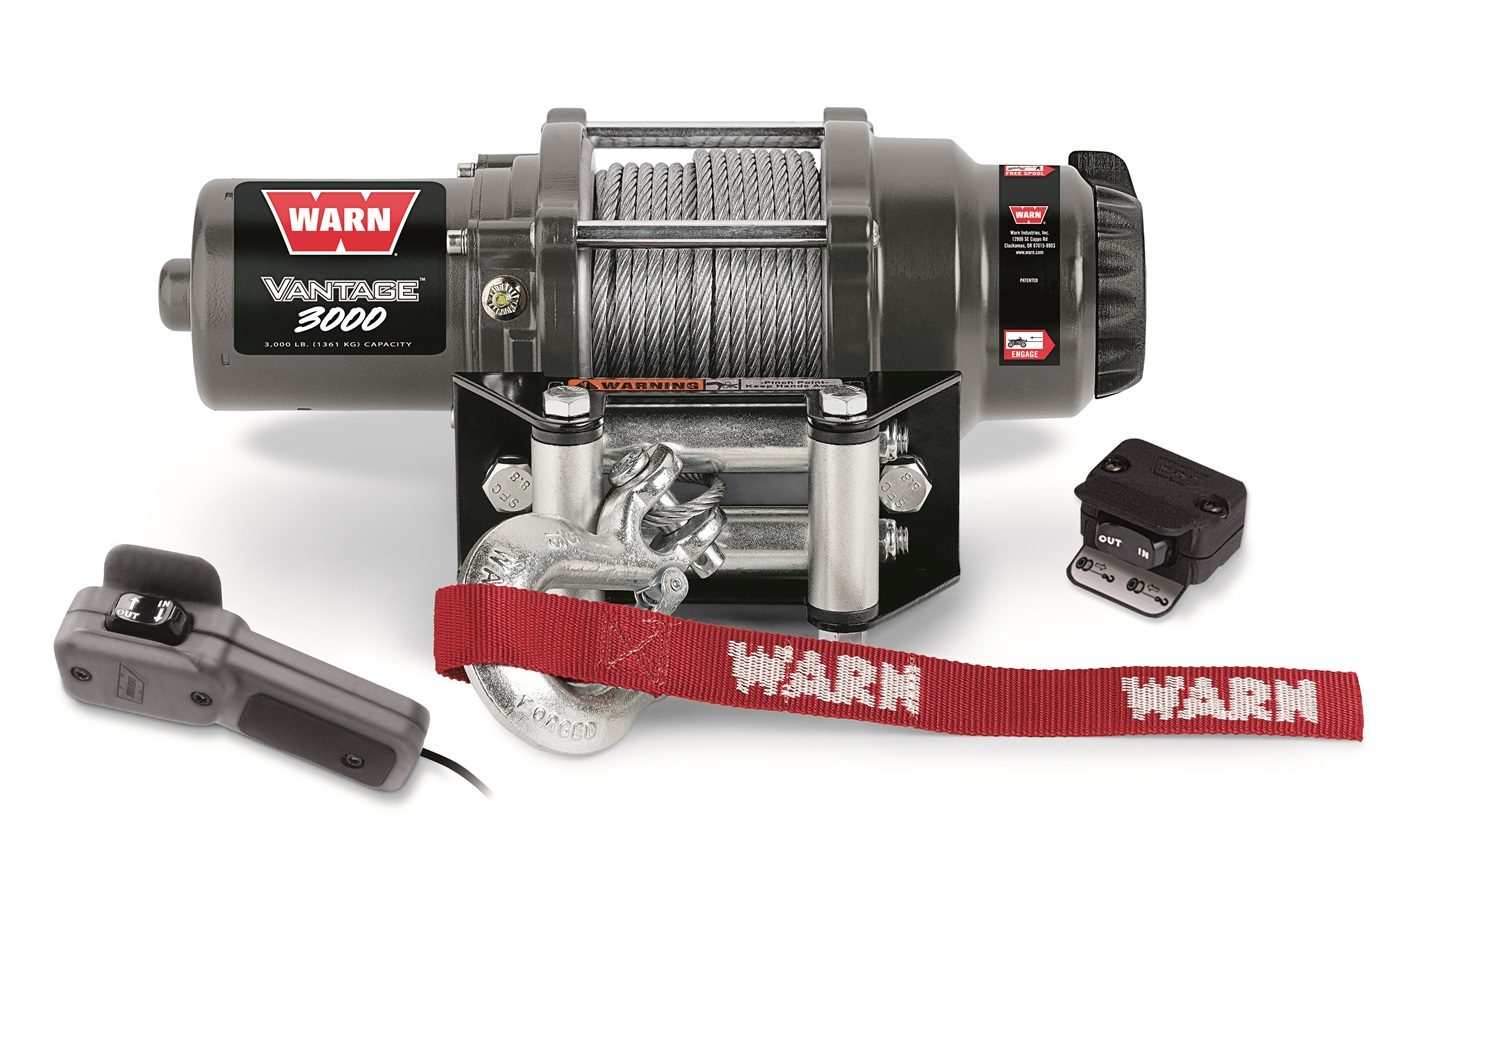 Warn 89030 Vantage 3000  Winch  3000 lbs./1361 kg  12V Permanent Magnet Motor  50 ft. Wire Rope at Sears.com